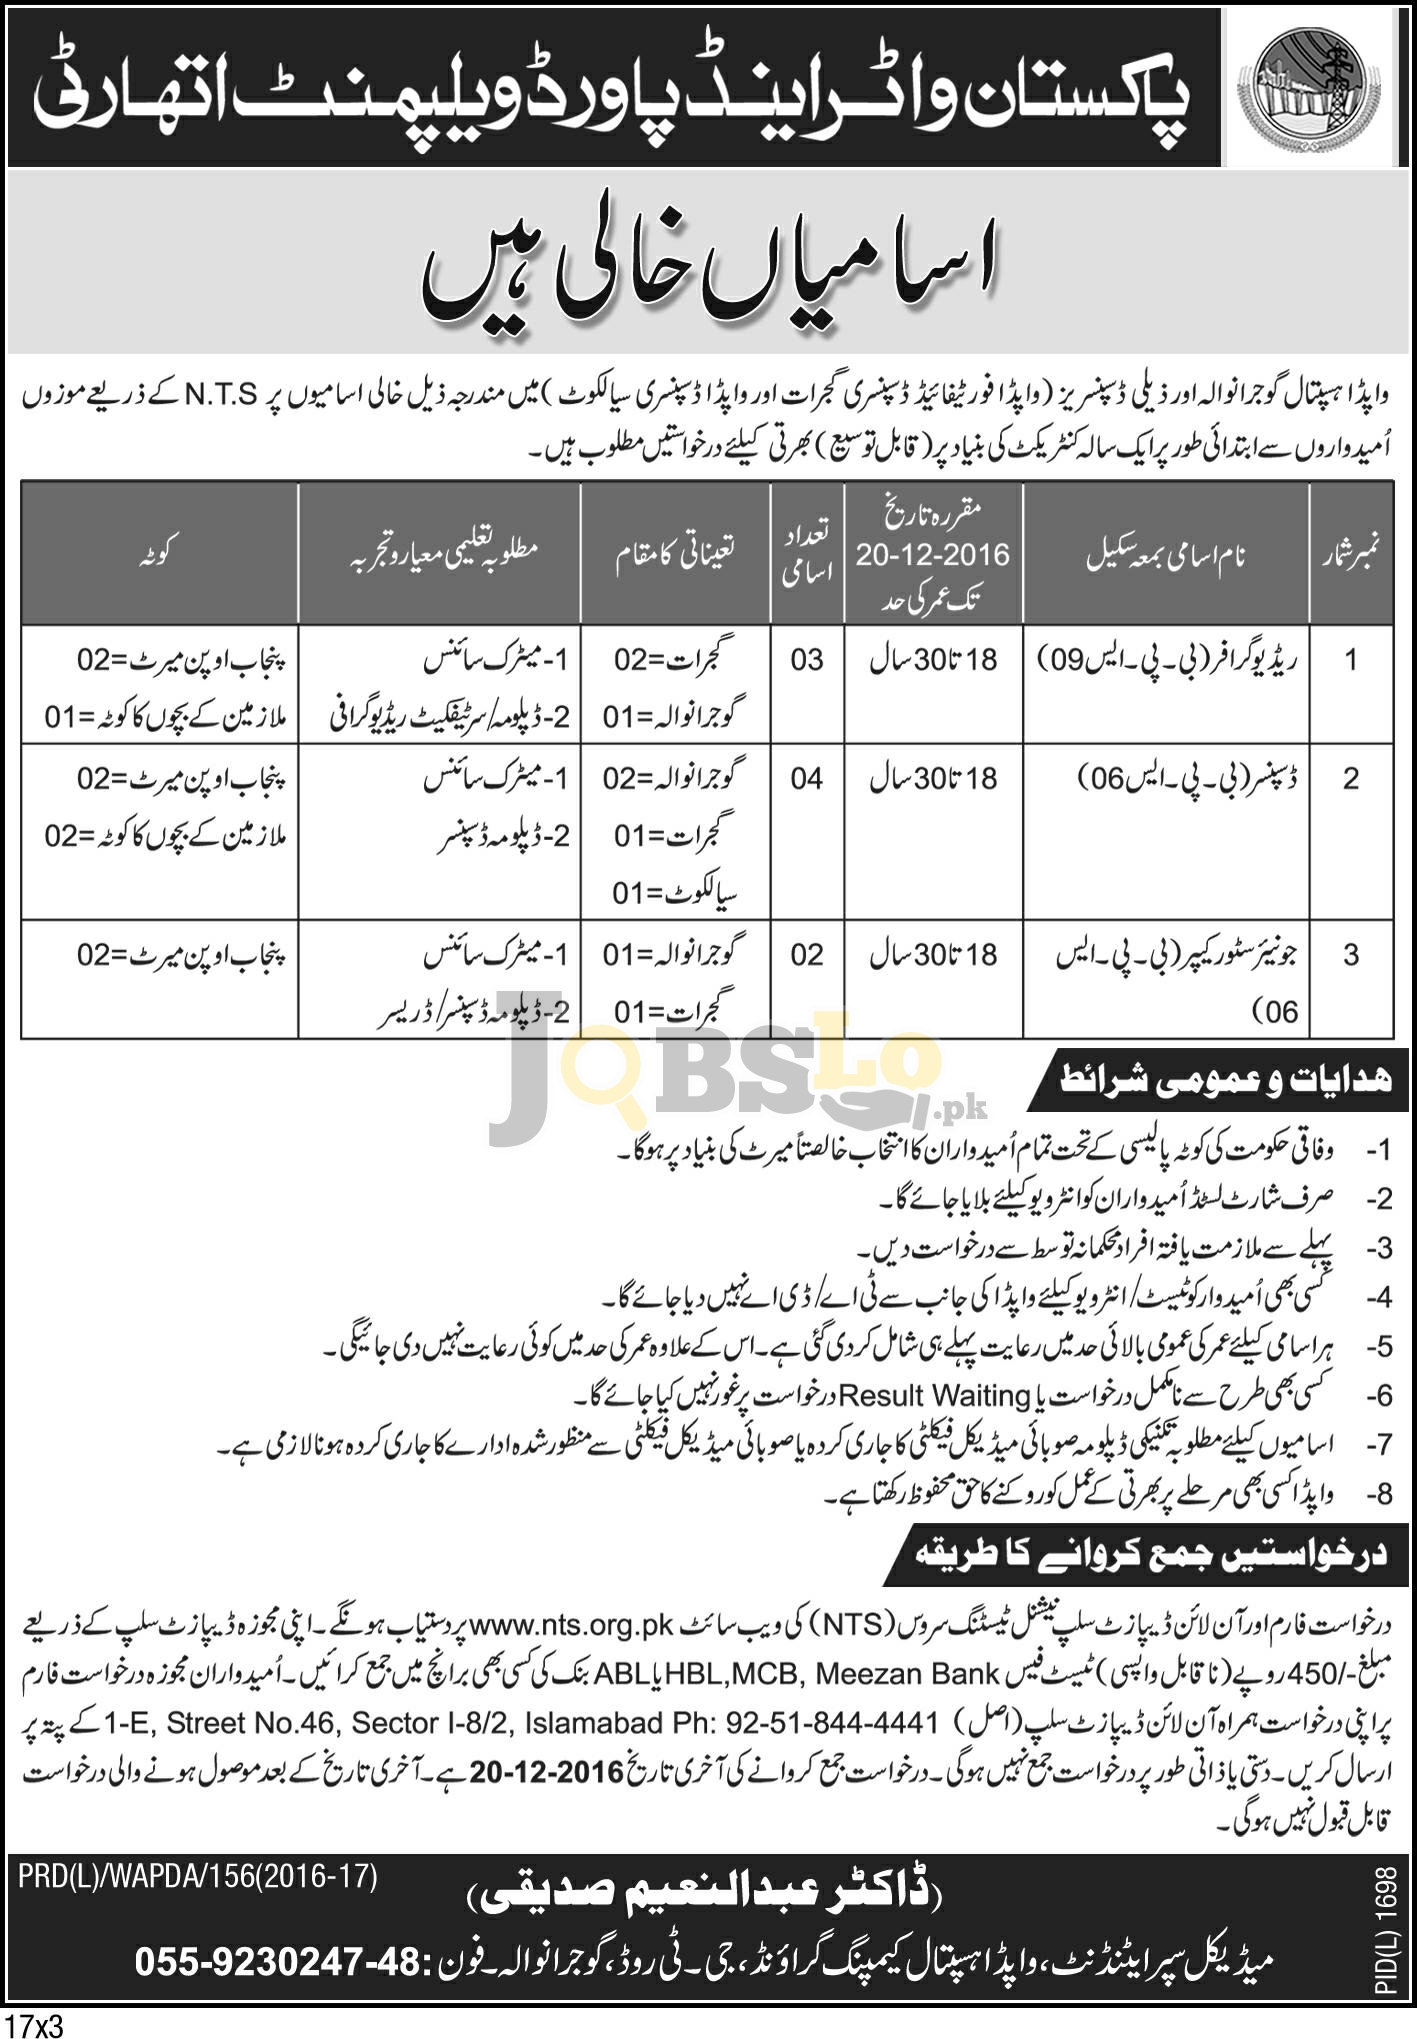 WAPDA Hospital Jobs